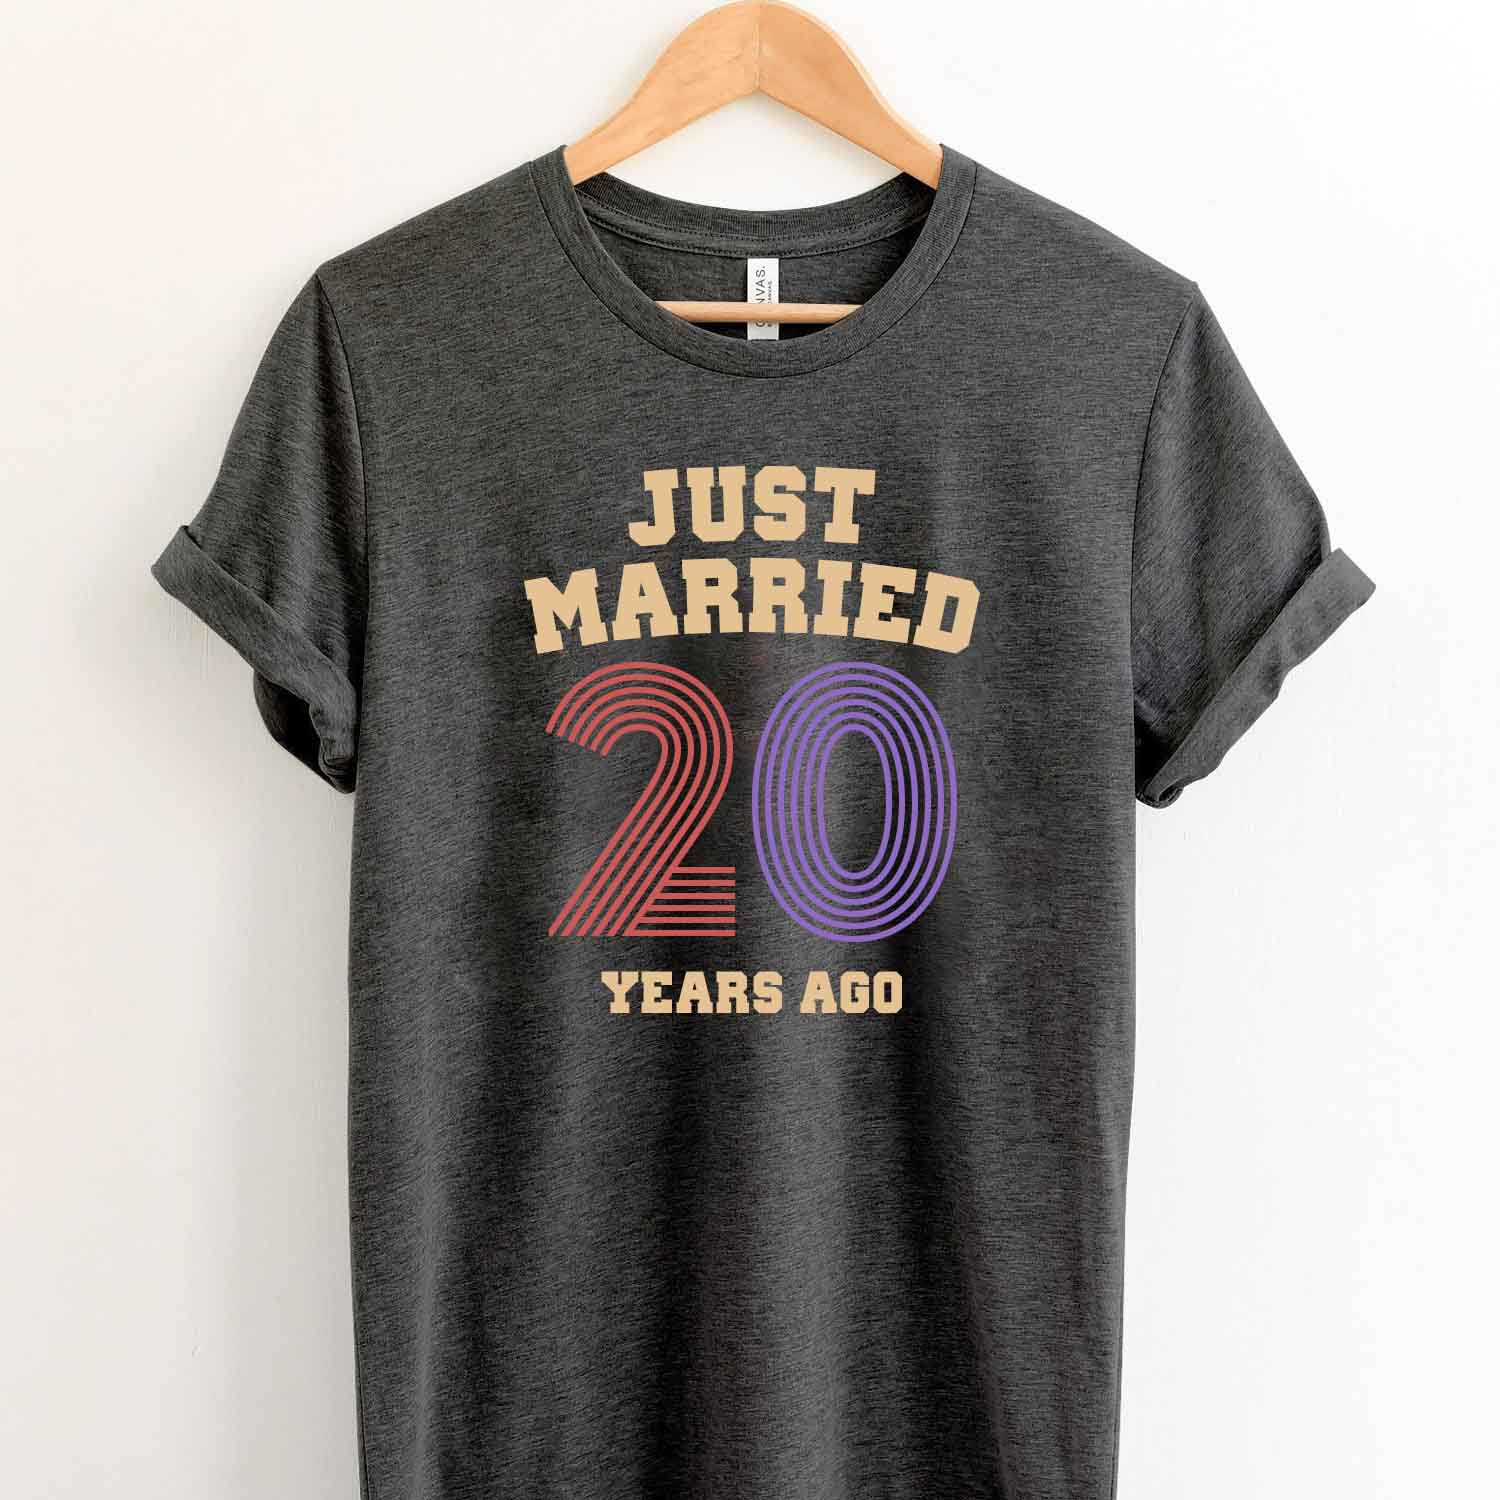 Just Married 20 Years Ago 1999 T Shirt Perfect Sweet Romantic Gift for Couple Husband Wife